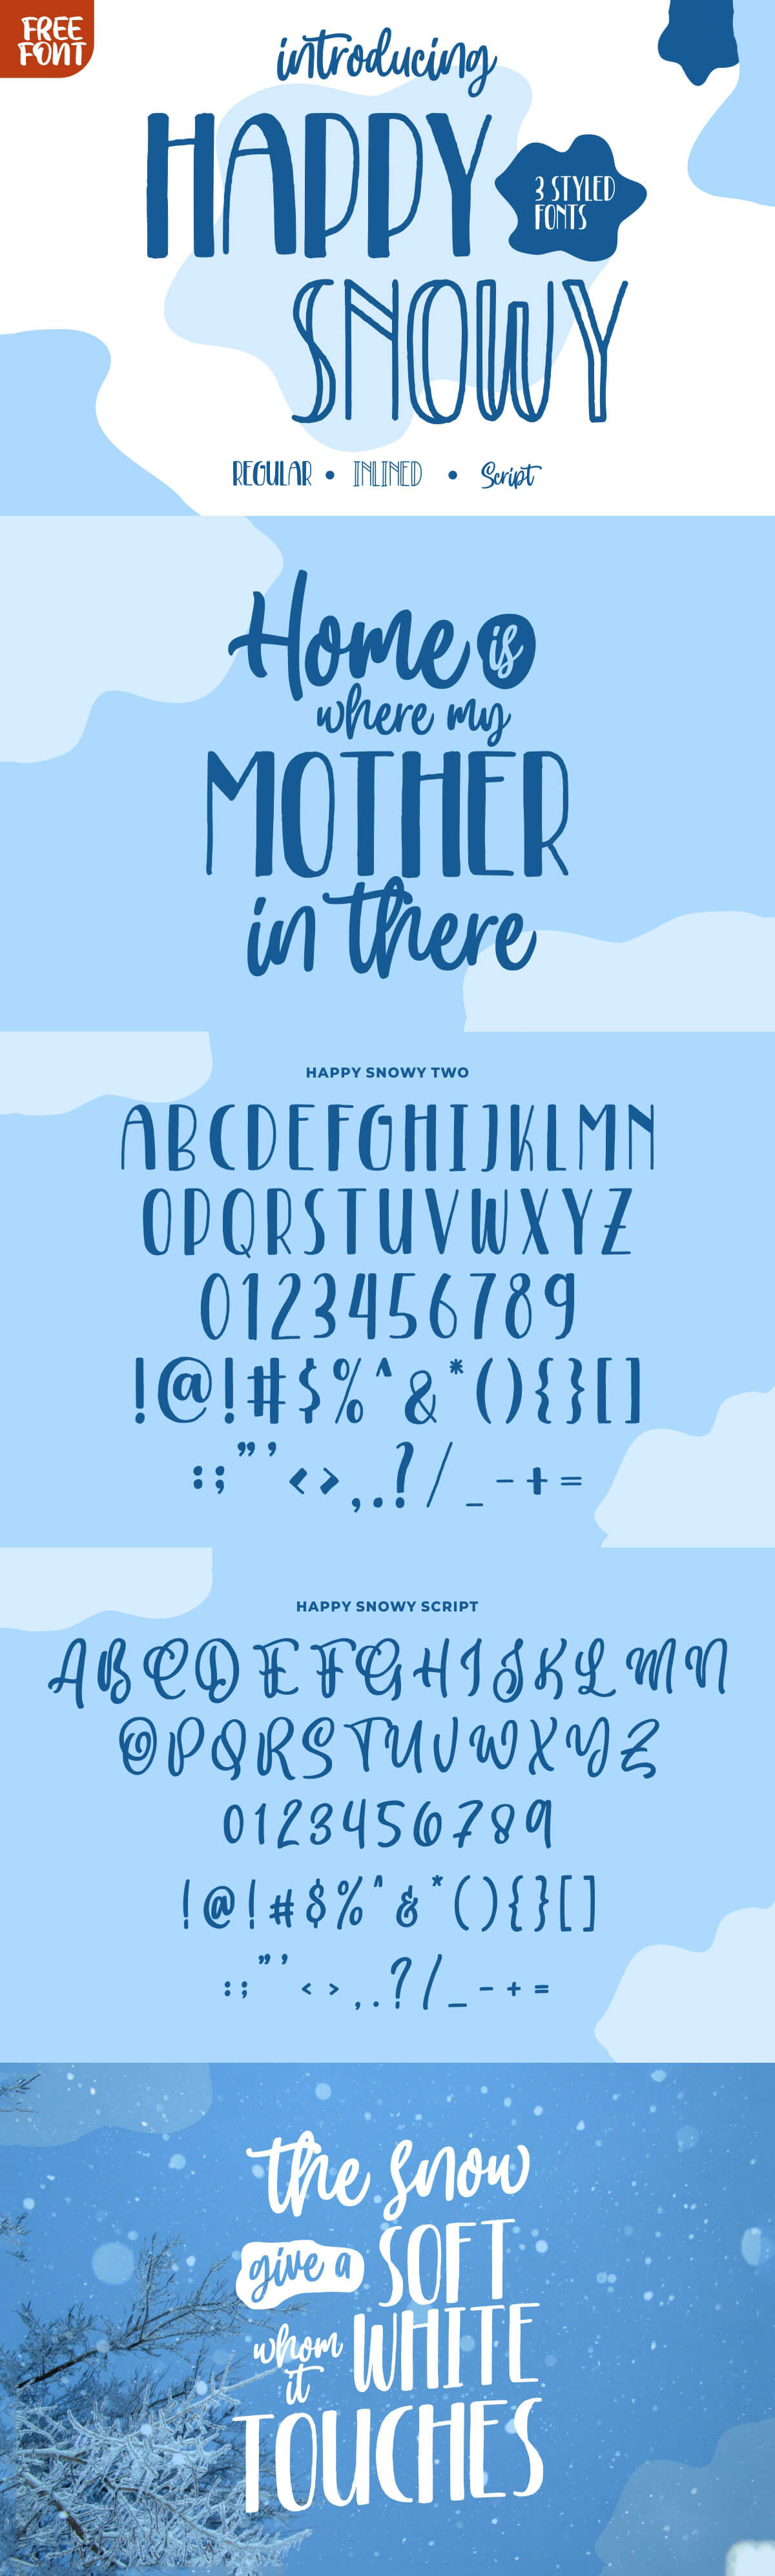 Free Happy Snowy Display Font Family